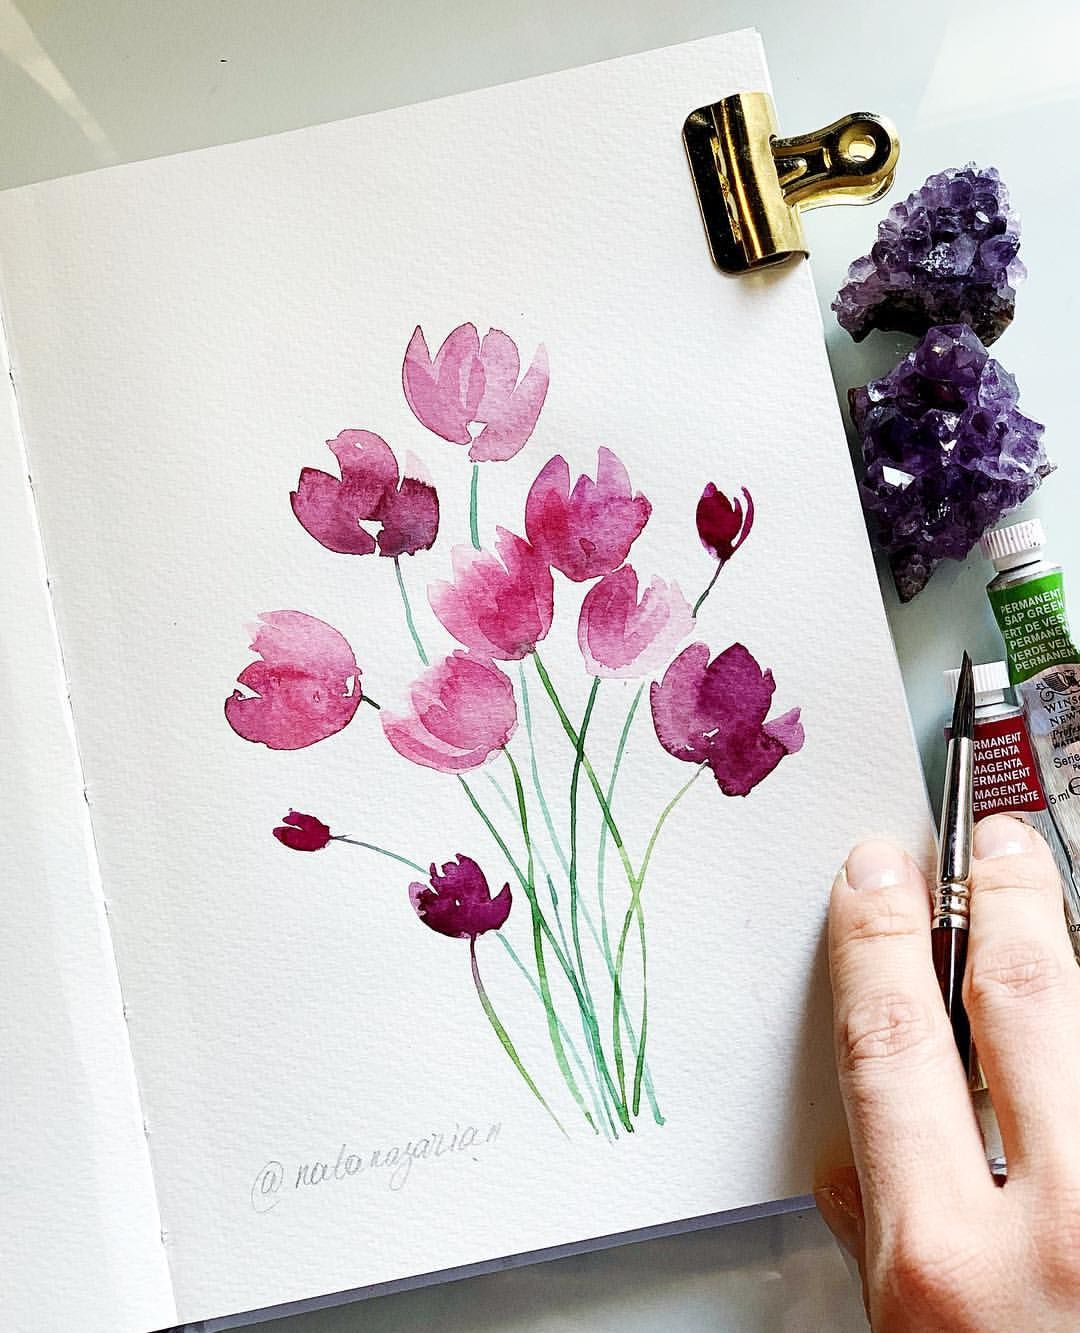 Today Agnes Paint It Fun In Her Blog Asked An Interesting Questio Watercolor Flowers Paintings Watercolor Paintings Easy Flower Drawing